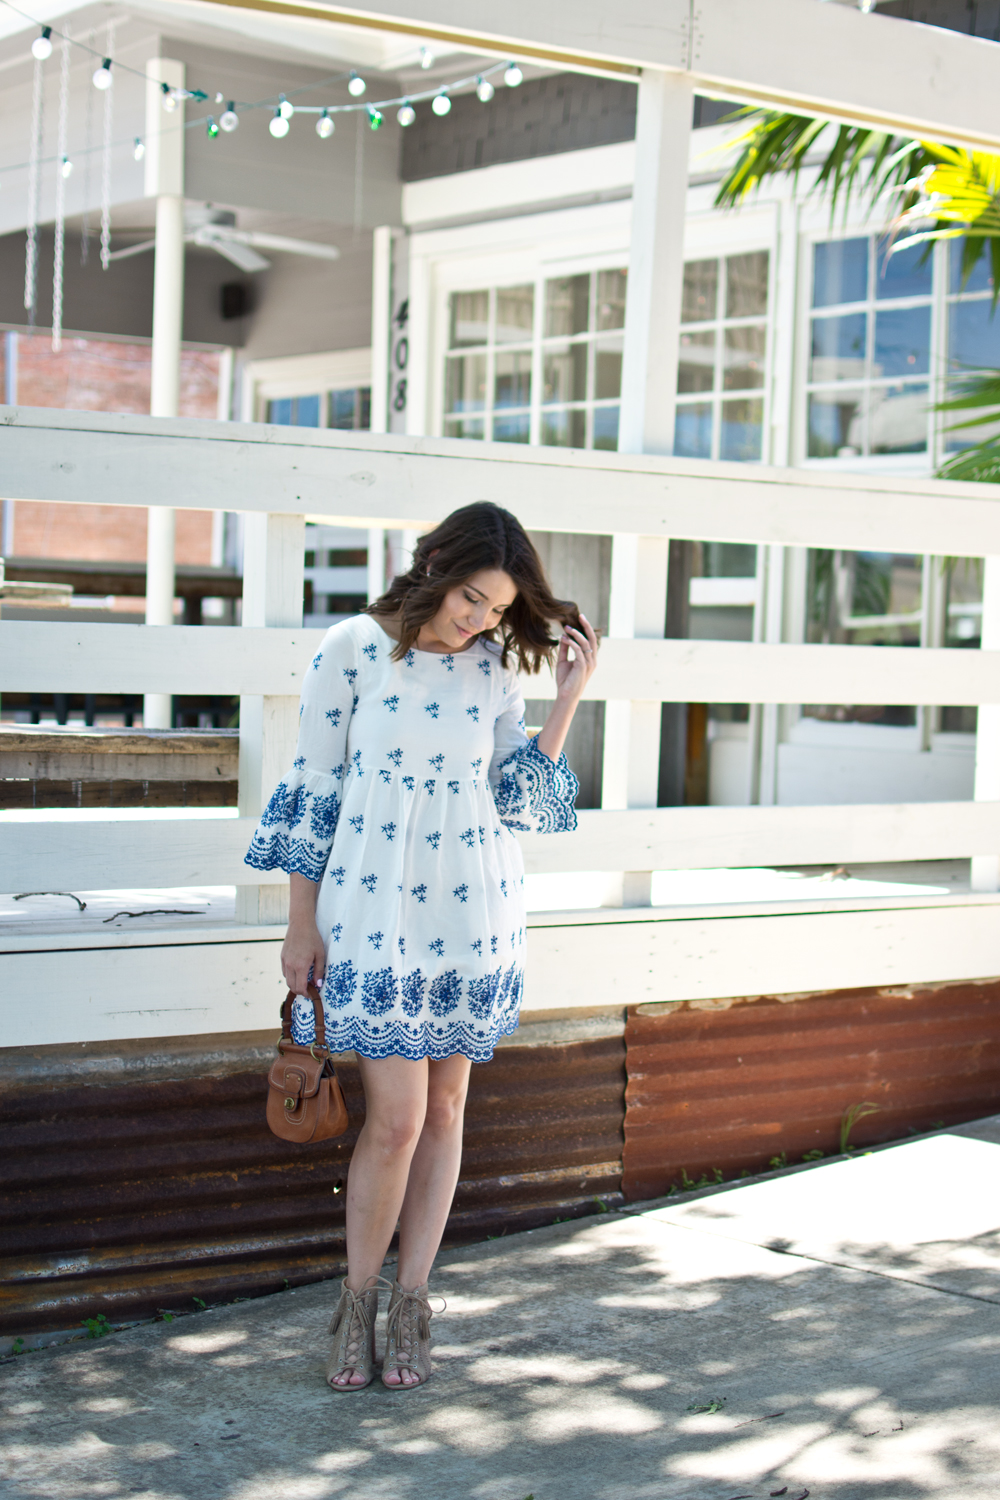 summer outfit, mothers day brunch outfit, white and blue embroidered dress outfit, fashion blogger, babydoll dress outfit, scallop dress, summer fashion blogger outfit